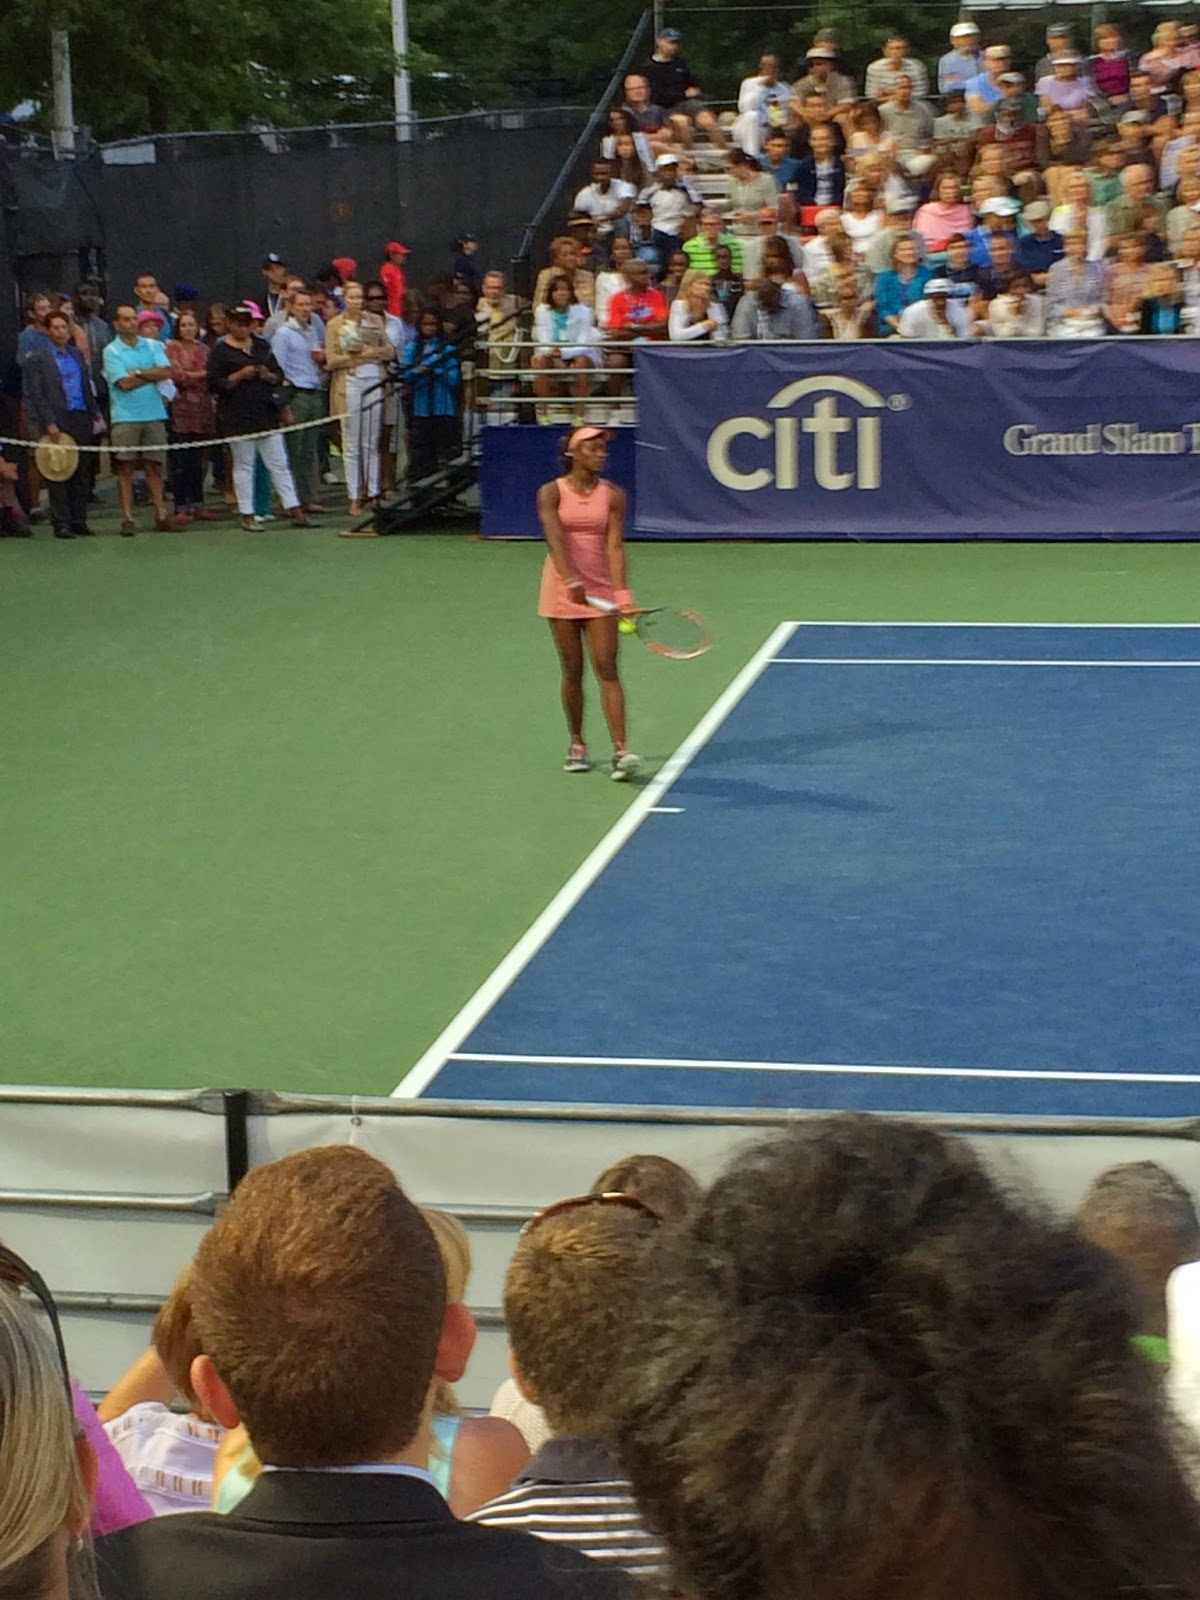 Sloane-Stephens-Citi-Open-Washington-DC